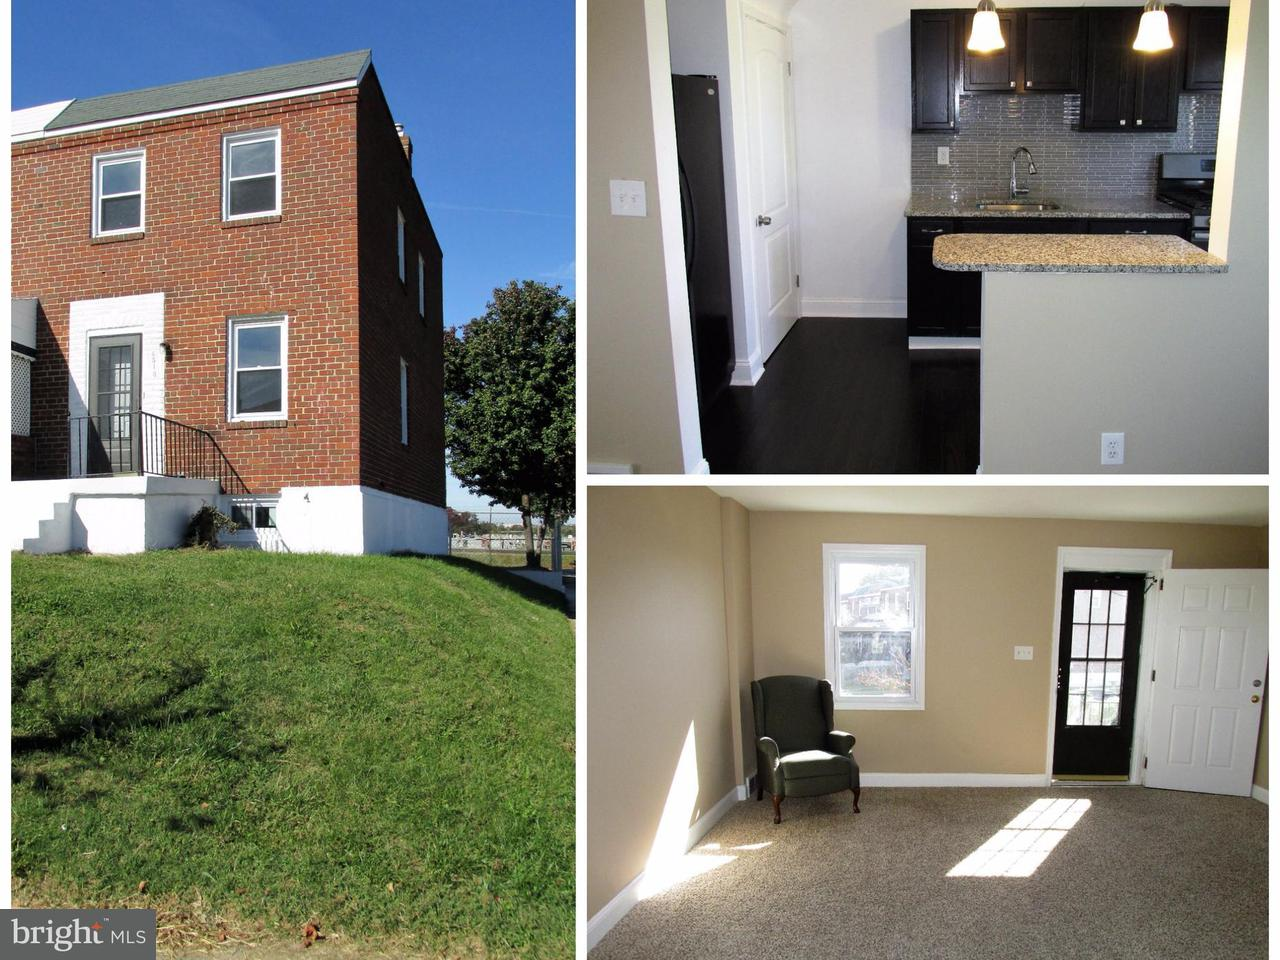 Other Residential for Rent at 6310 Danville Ave Baltimore, Maryland 21224 United States